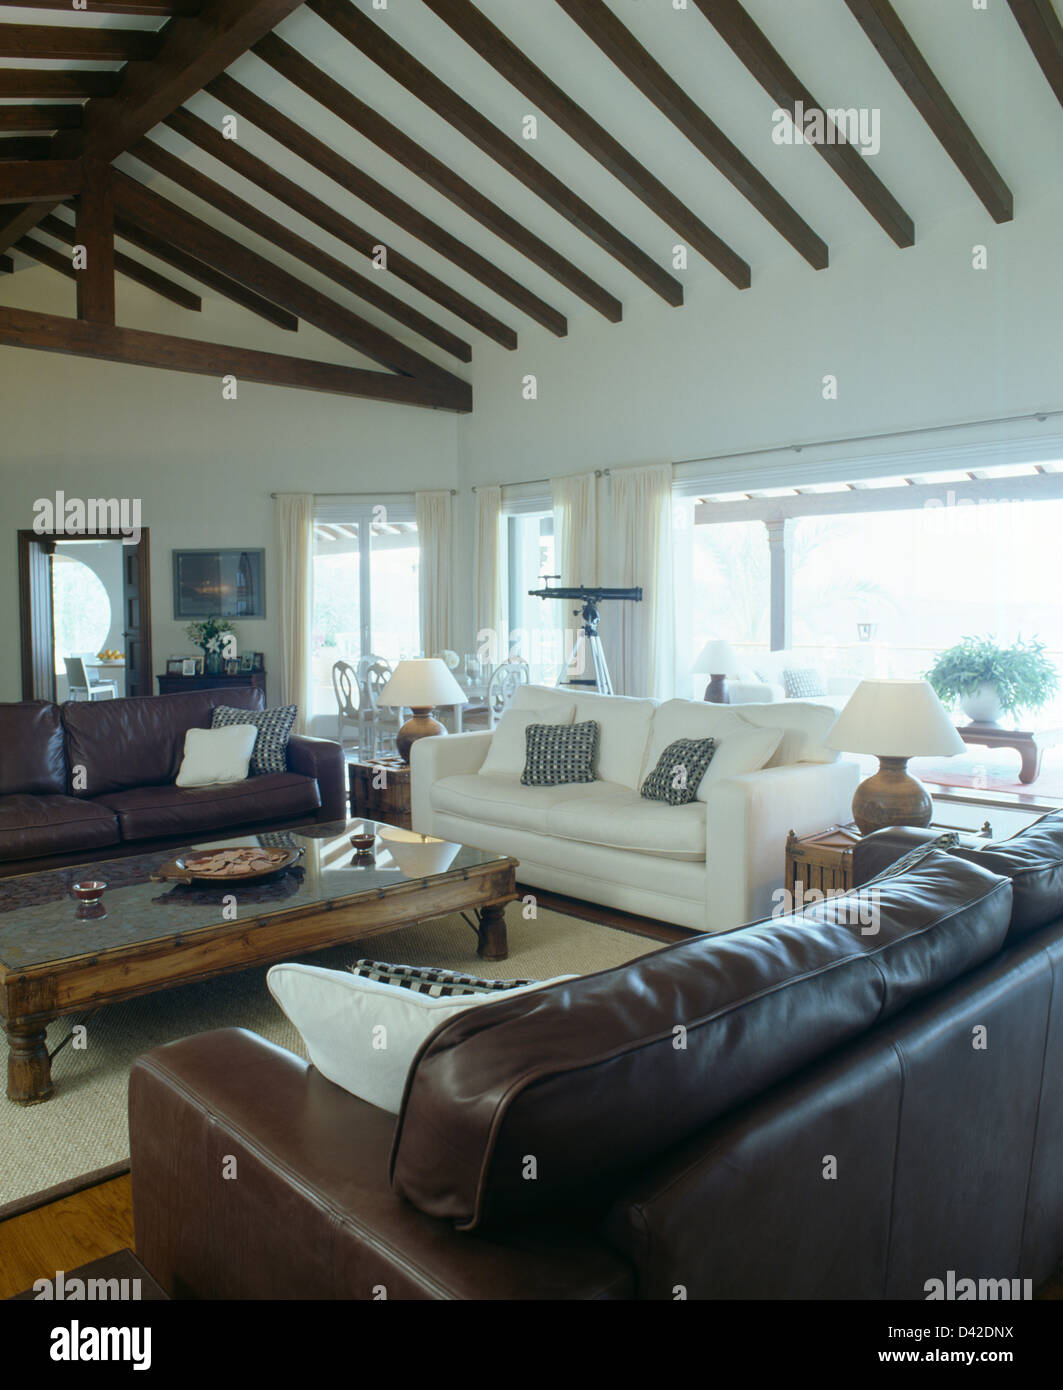 Brown leather sofas and white sofa in modern coastal living ...